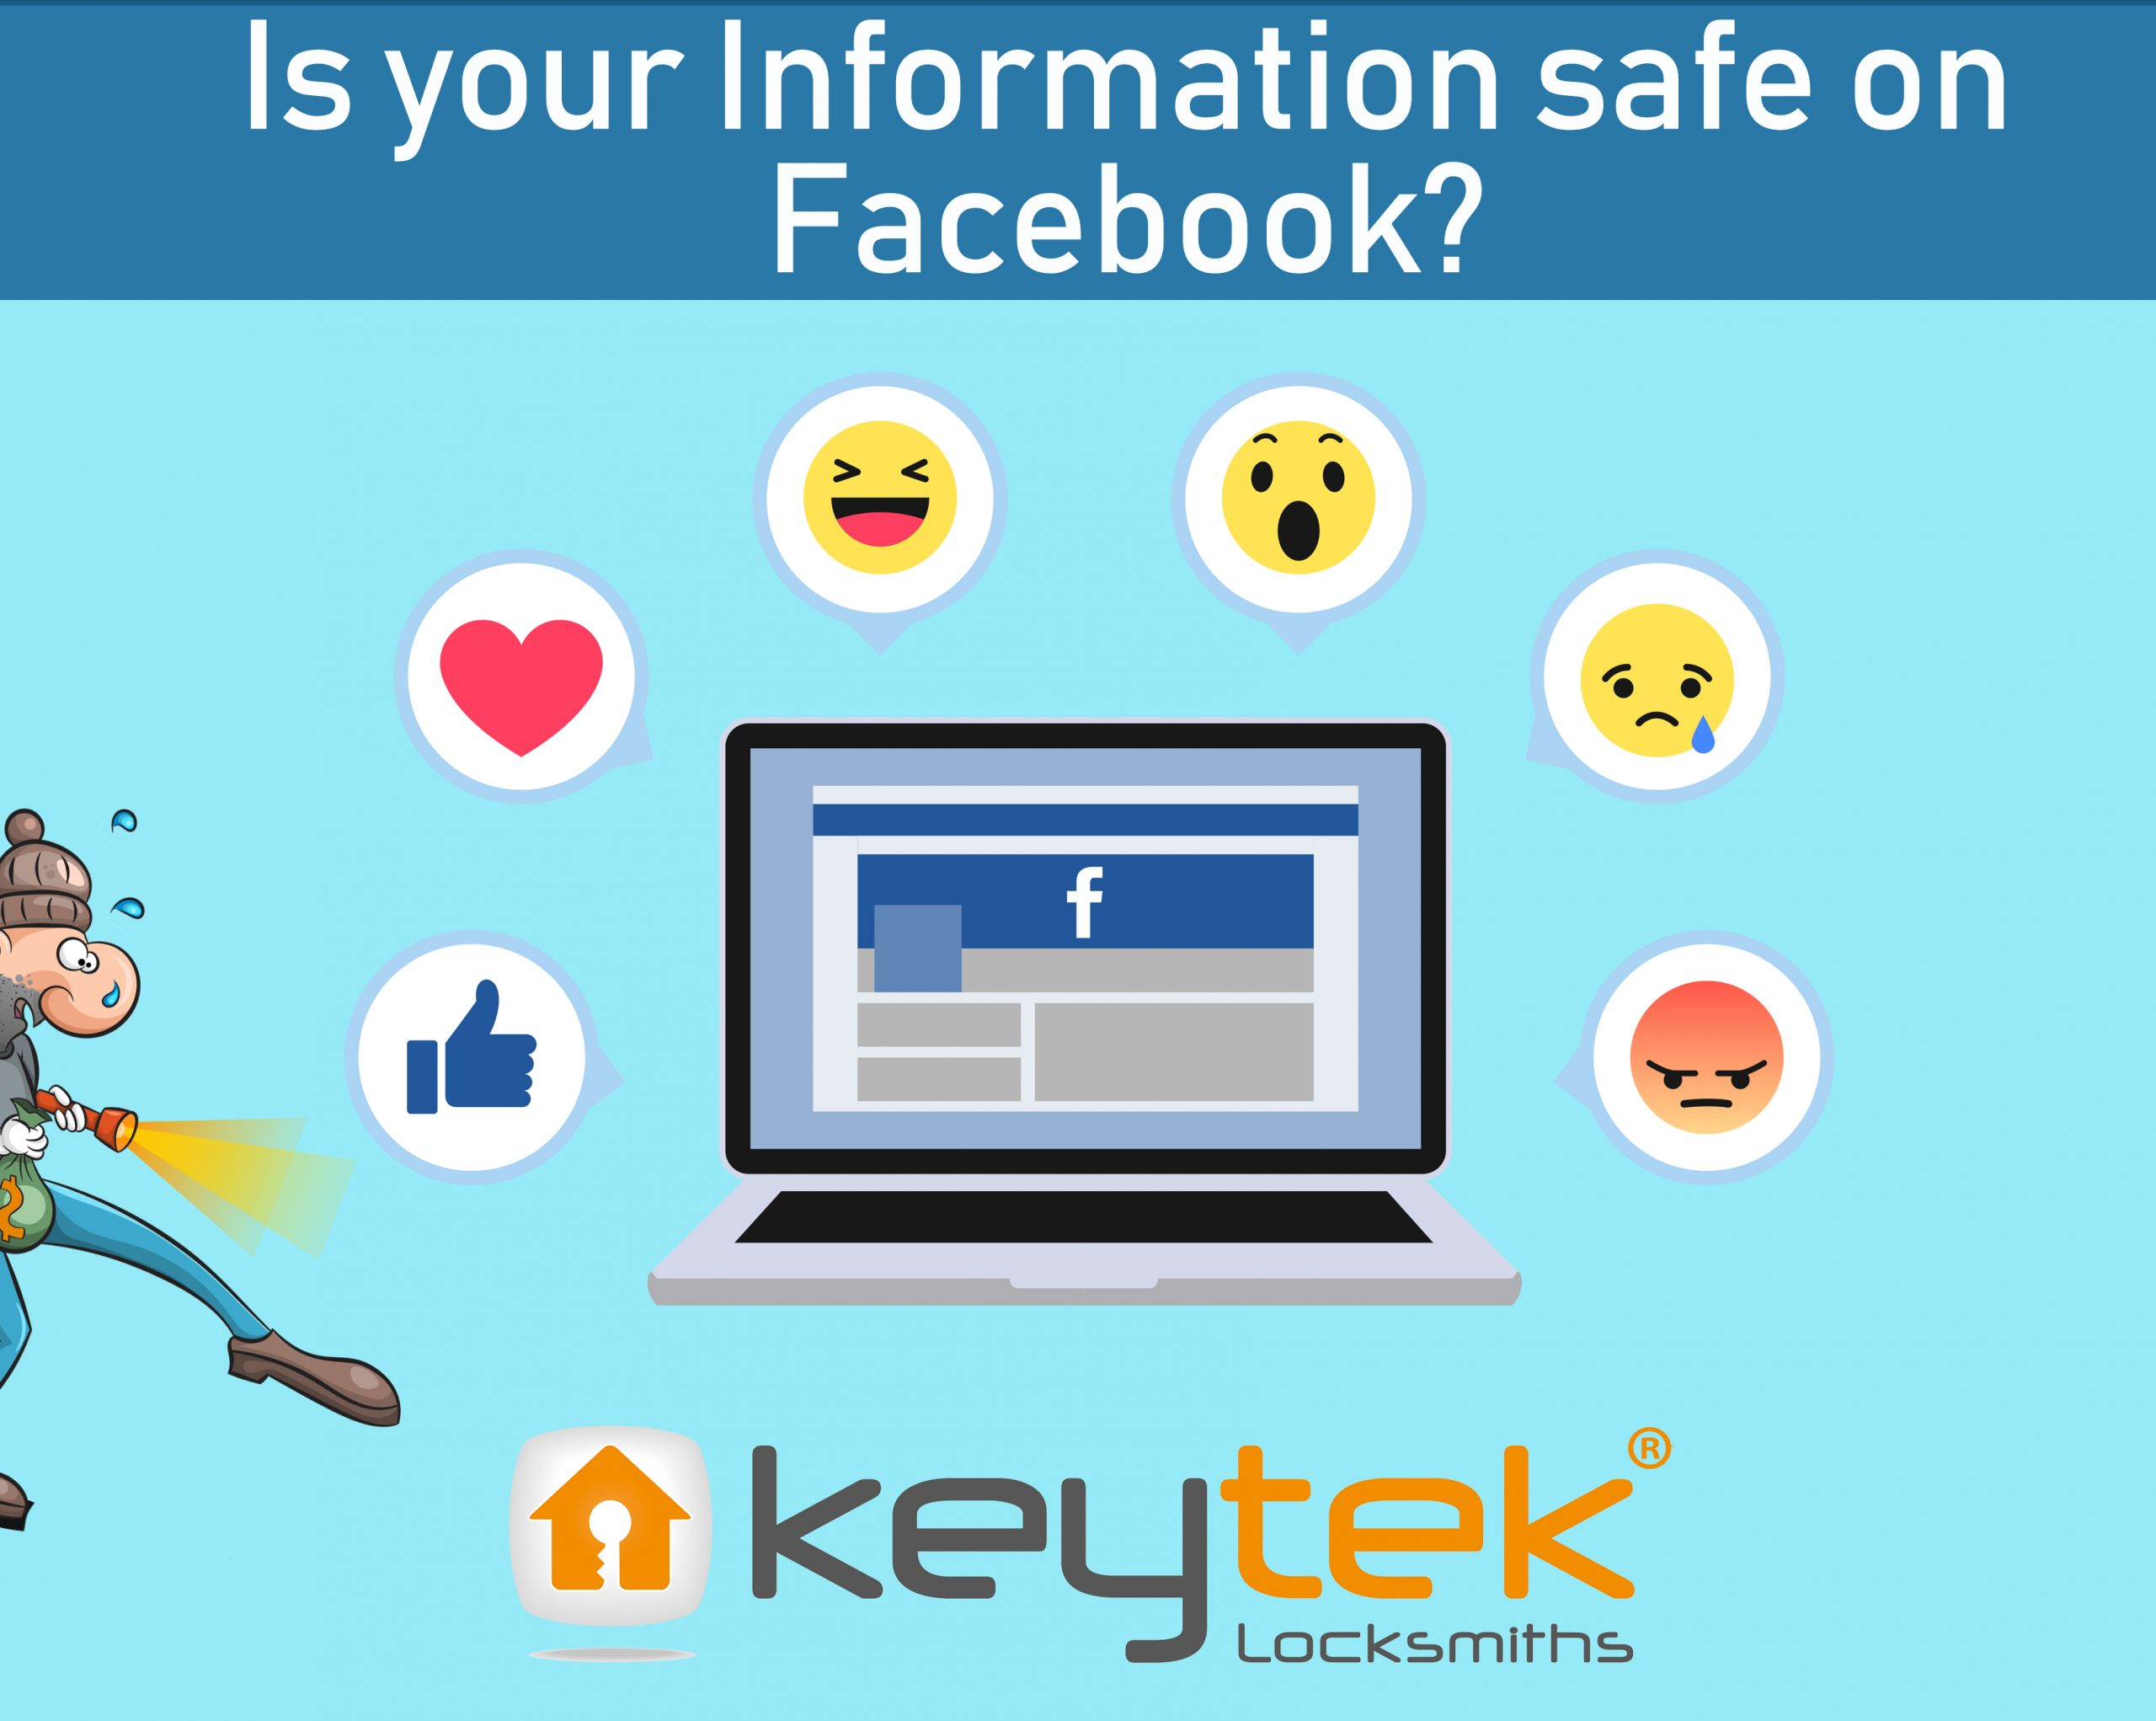 Is Your Information Safe on Facebook?